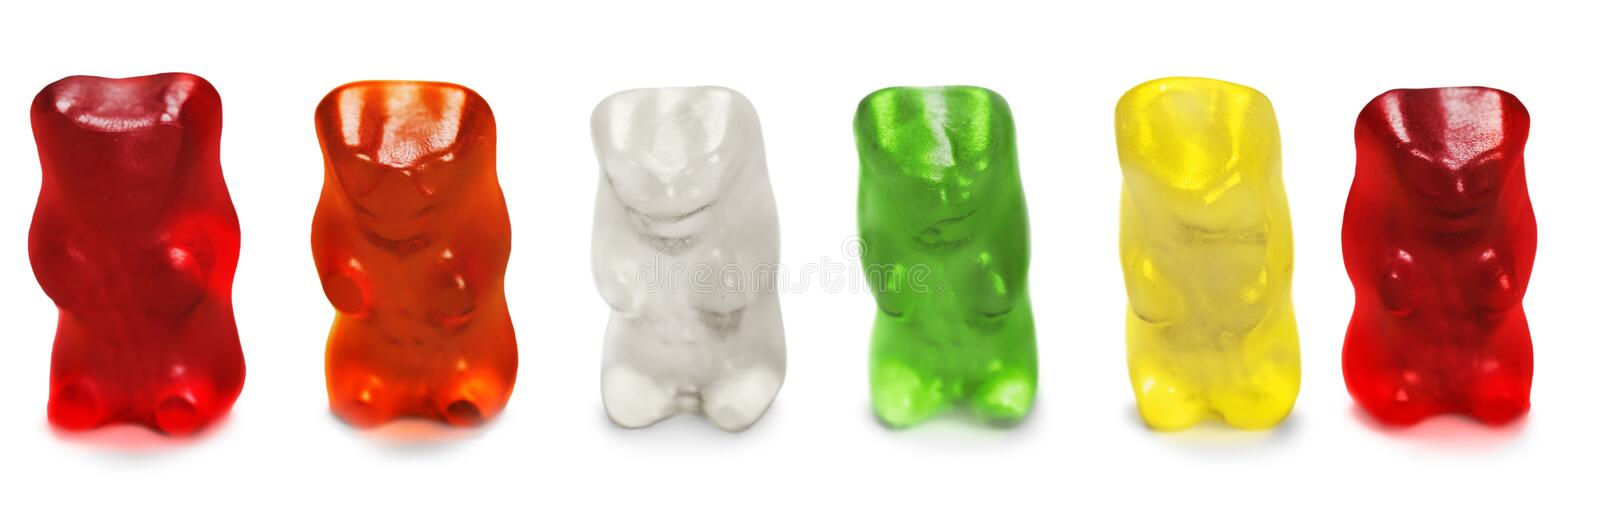 Childhood and jelly bears candies isolated on stock photography